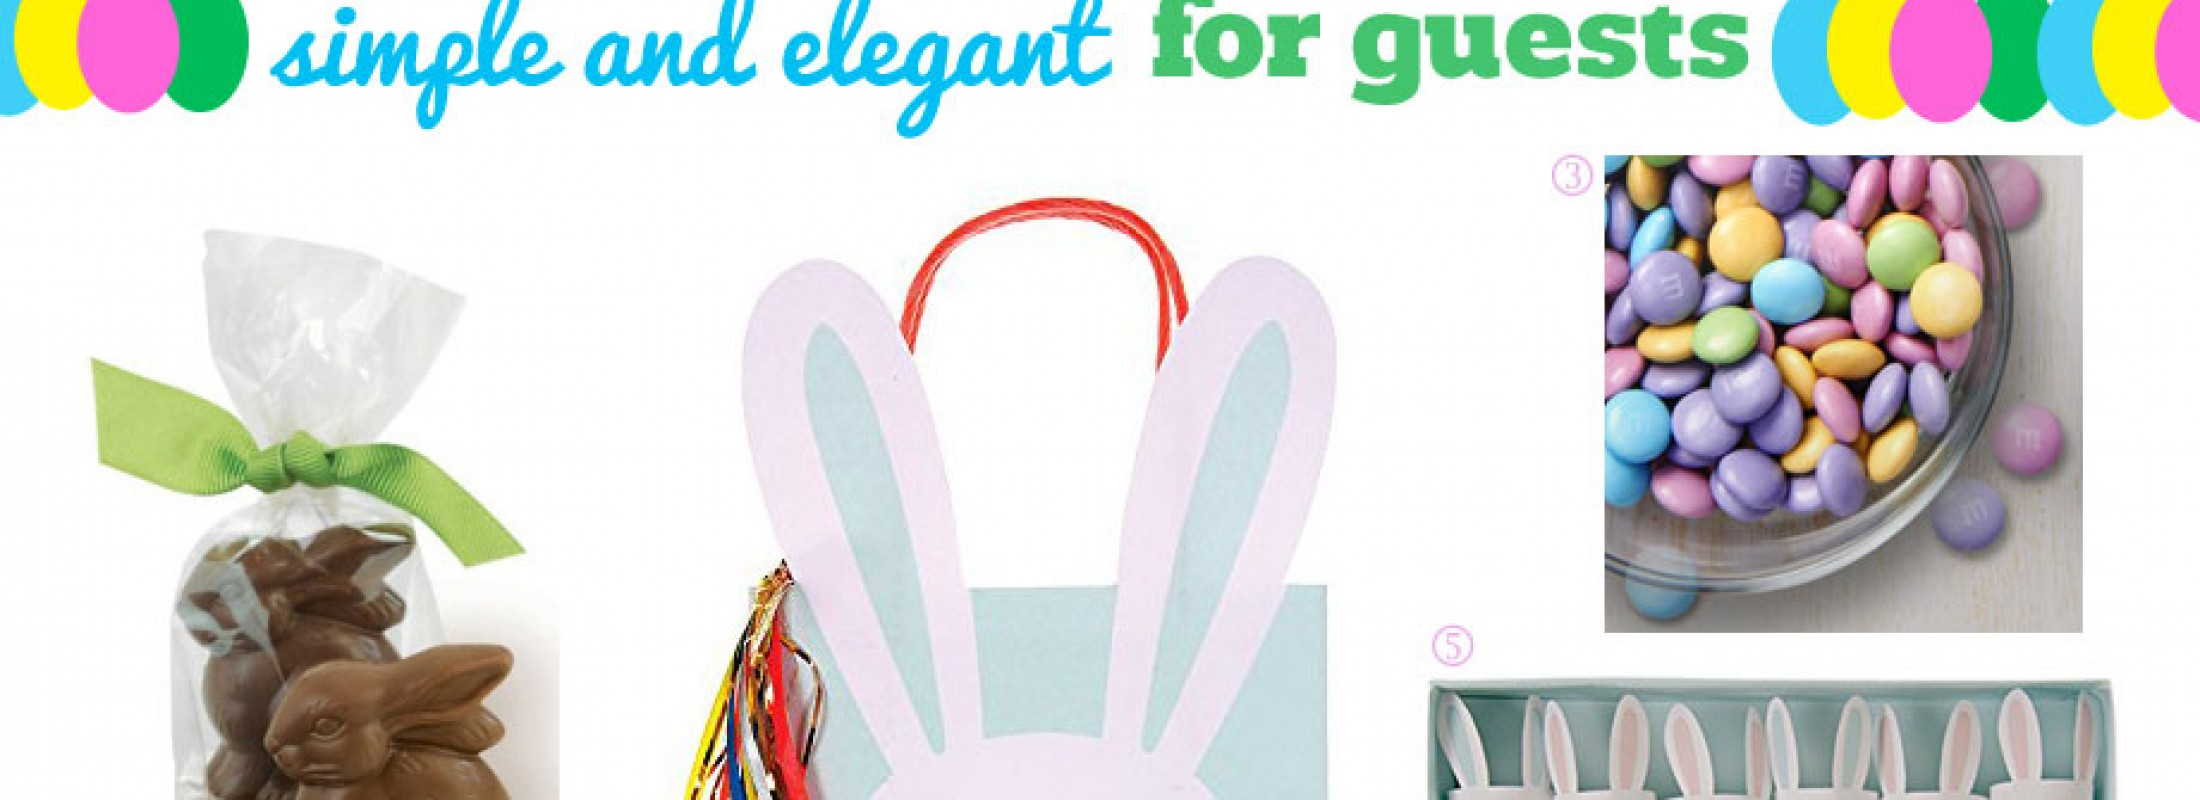 Elegant gift bags for Easter.